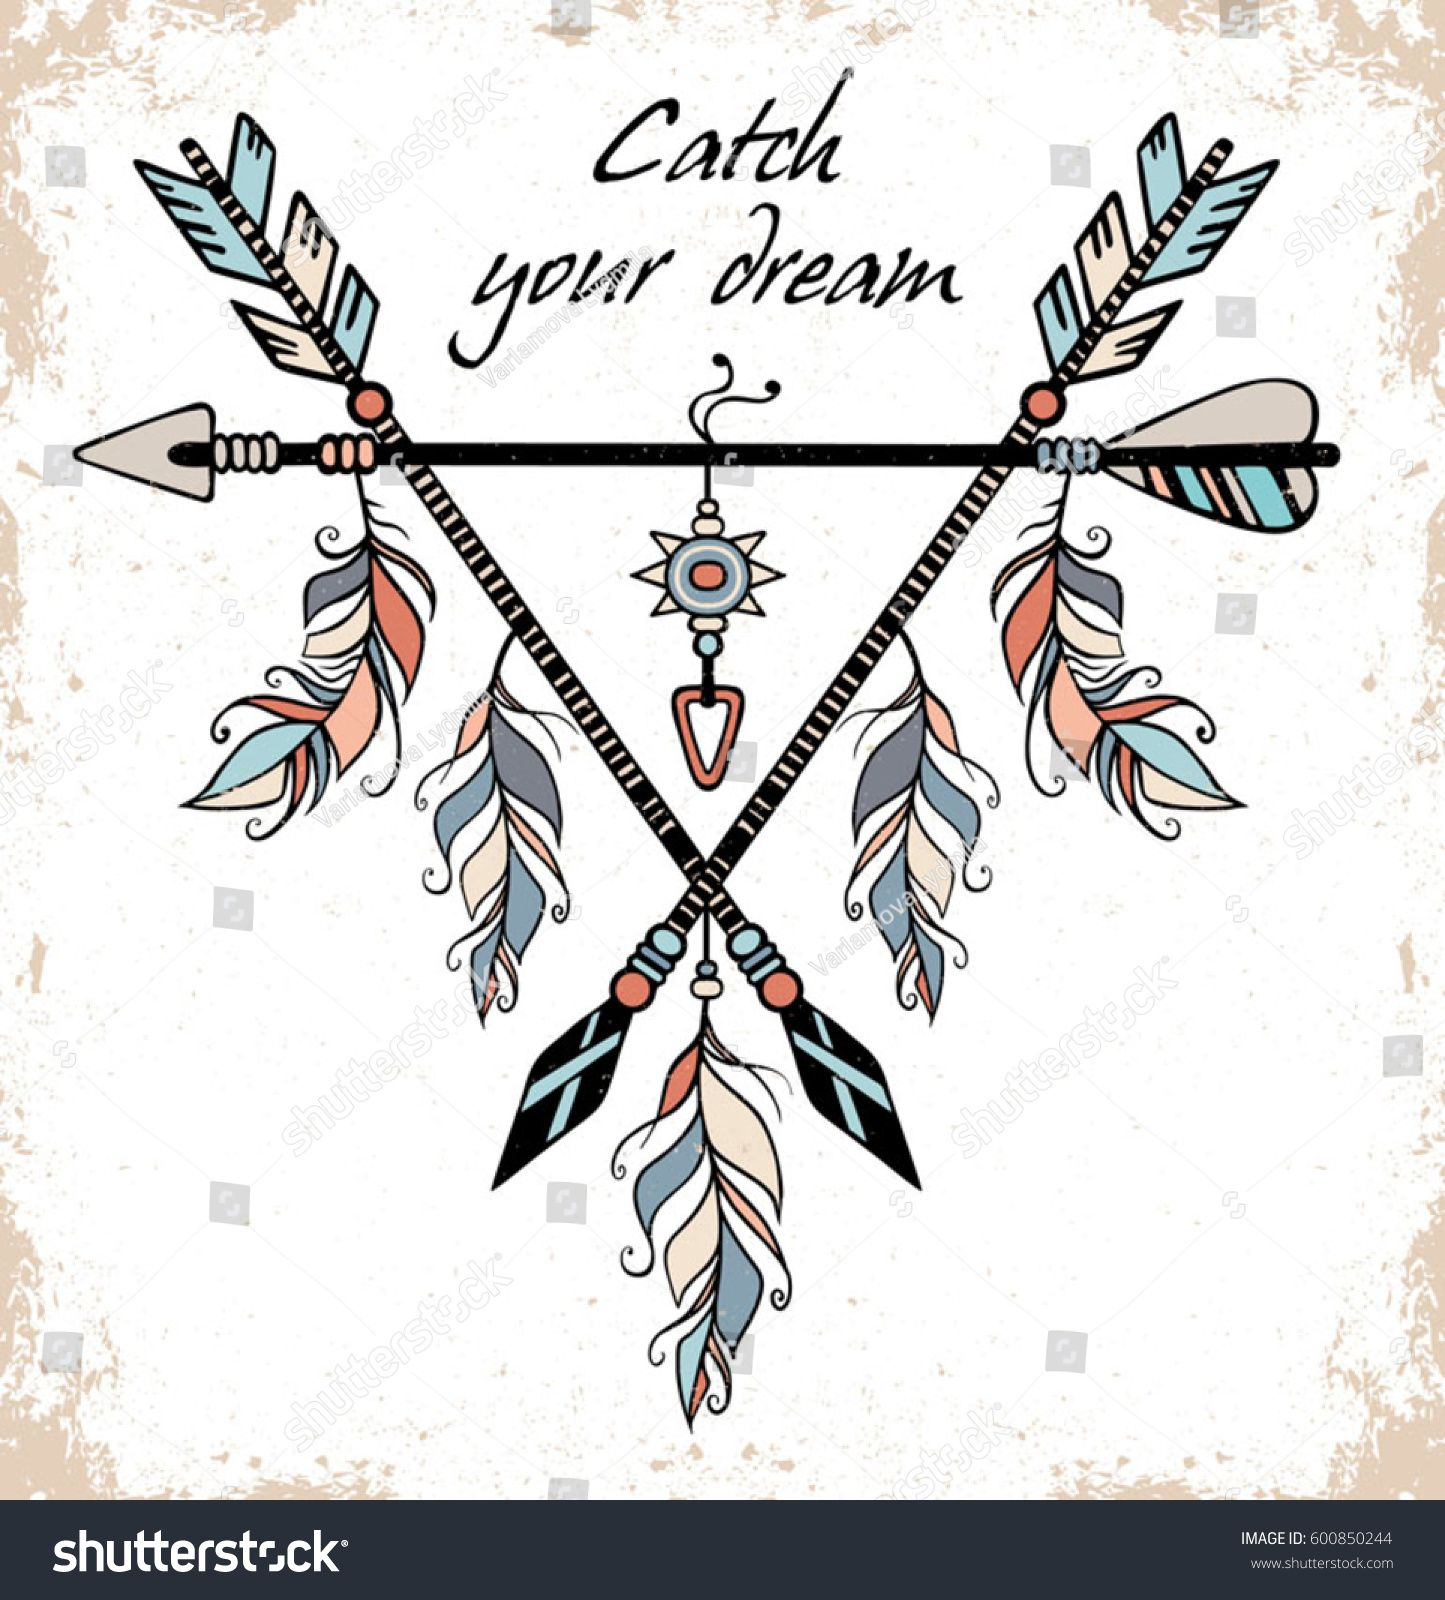 16881f1b5c547 Hand drawn illustration of dream catcher. Vector illustration with tribal  frame with ethnic arrows and feathers. American indian motifs. Boho style.